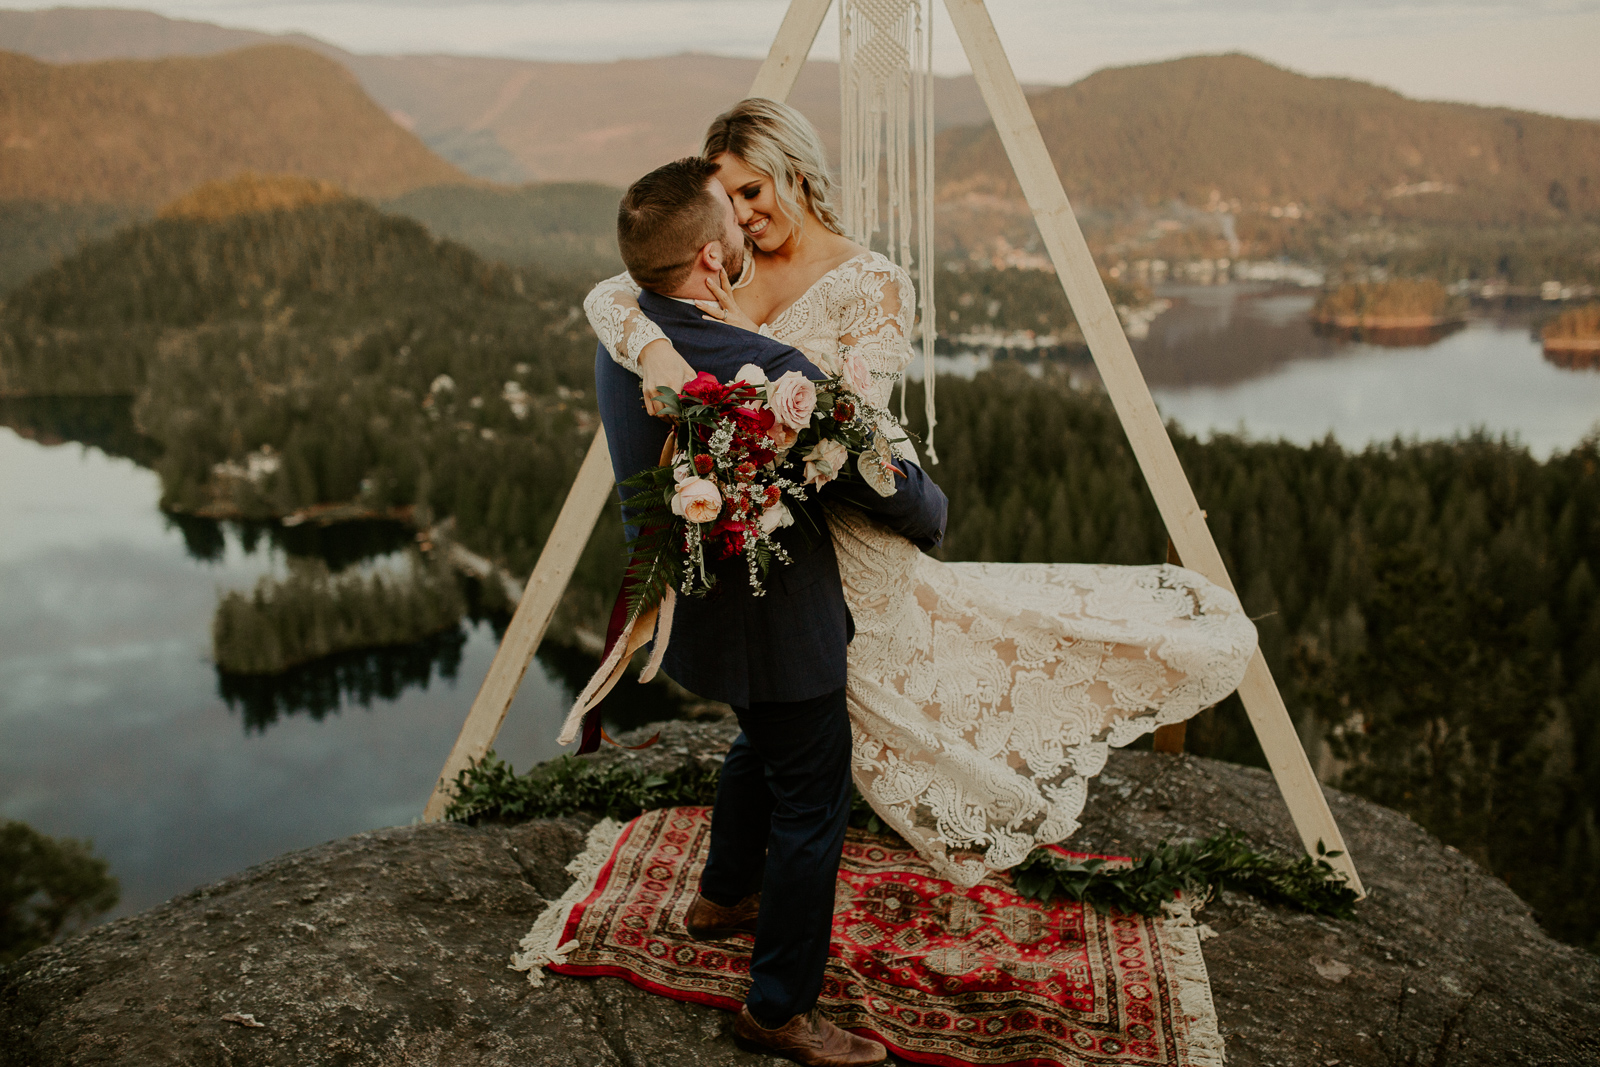 Luke Lambertson Photo_BritishColumbia_Canada_AdventurousCouple_Elopement_IMG-8506.jpg